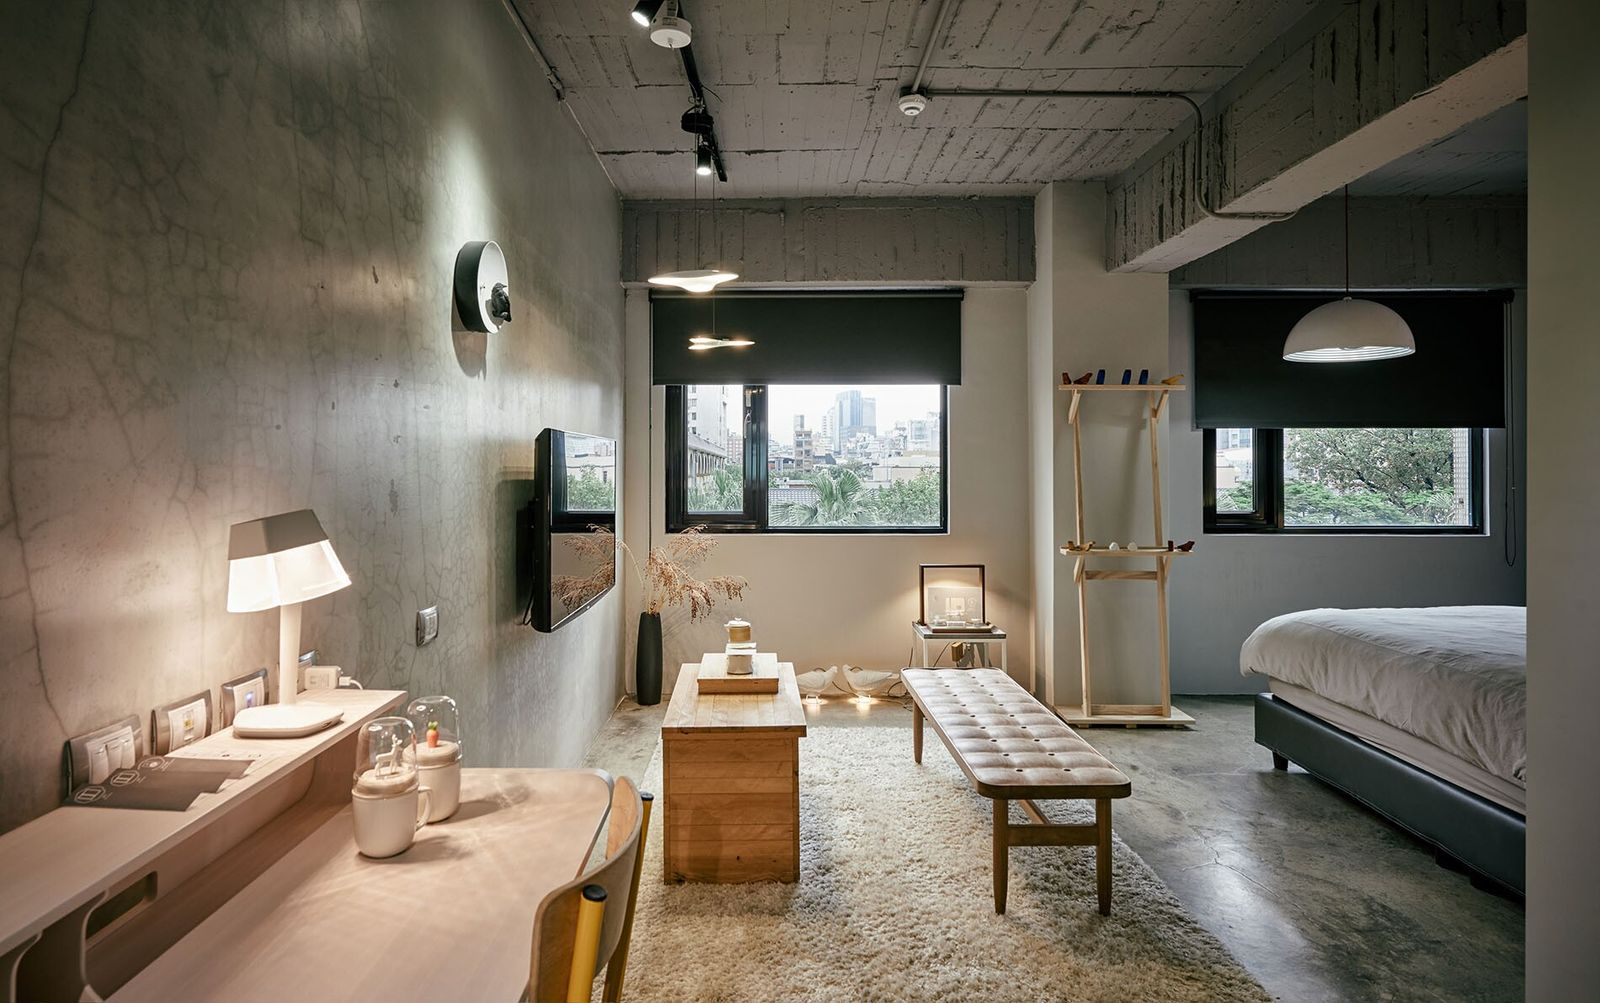 The furniture and decor is created by local Taiwanese craftspeople at Play Design Hotel.